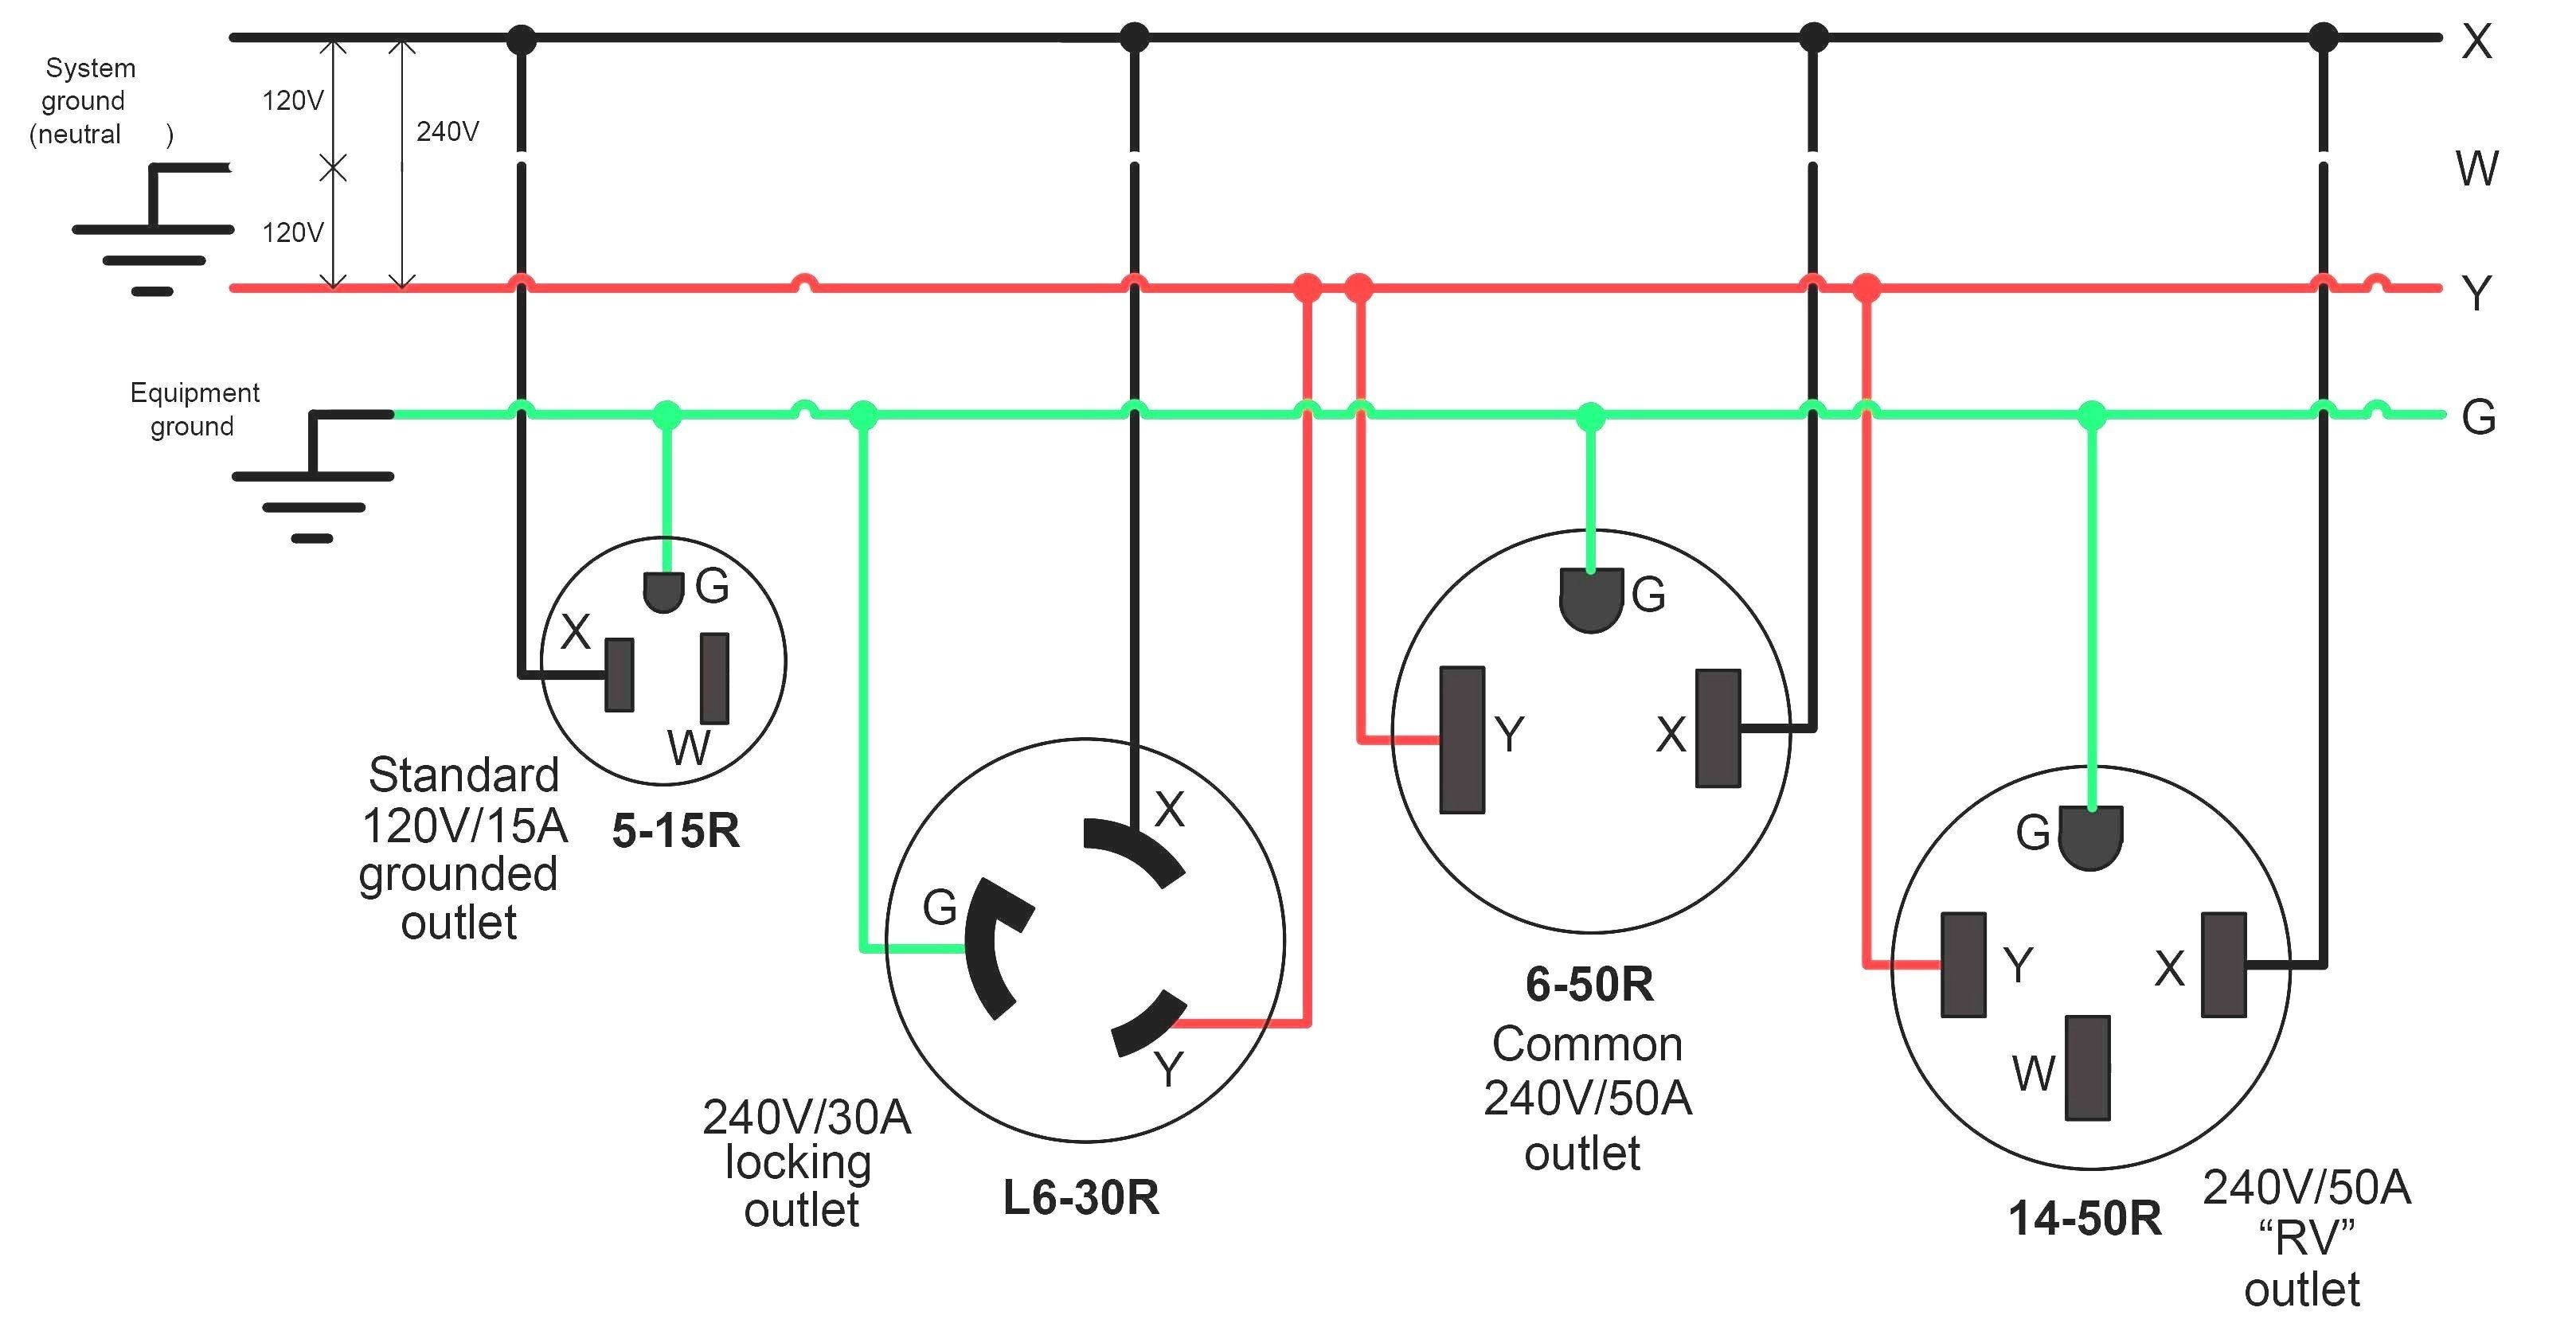 Ac Power Cord Wiring - Wiring Data Diagram on 3 prong dryer receptacle wiring, electrical outlet wiring diagram, flat wiring diagram, g24q-3 wiring diagram, g9 wiring diagram, 2 prong wiring diagram, 3-pin plug wiring diagram, plug in wiring diagram, 2g11 wiring diagram, three prong plug diagram, 3 wire range outlet diagram, grounded wiring diagram, 3 prong electrical wiring guide, g23 wiring diagram, 5 prong wiring diagram, 3 prong 220 wiring, 3 channel wiring diagram, 3 prong stove wiring, 4 prong wiring diagram,